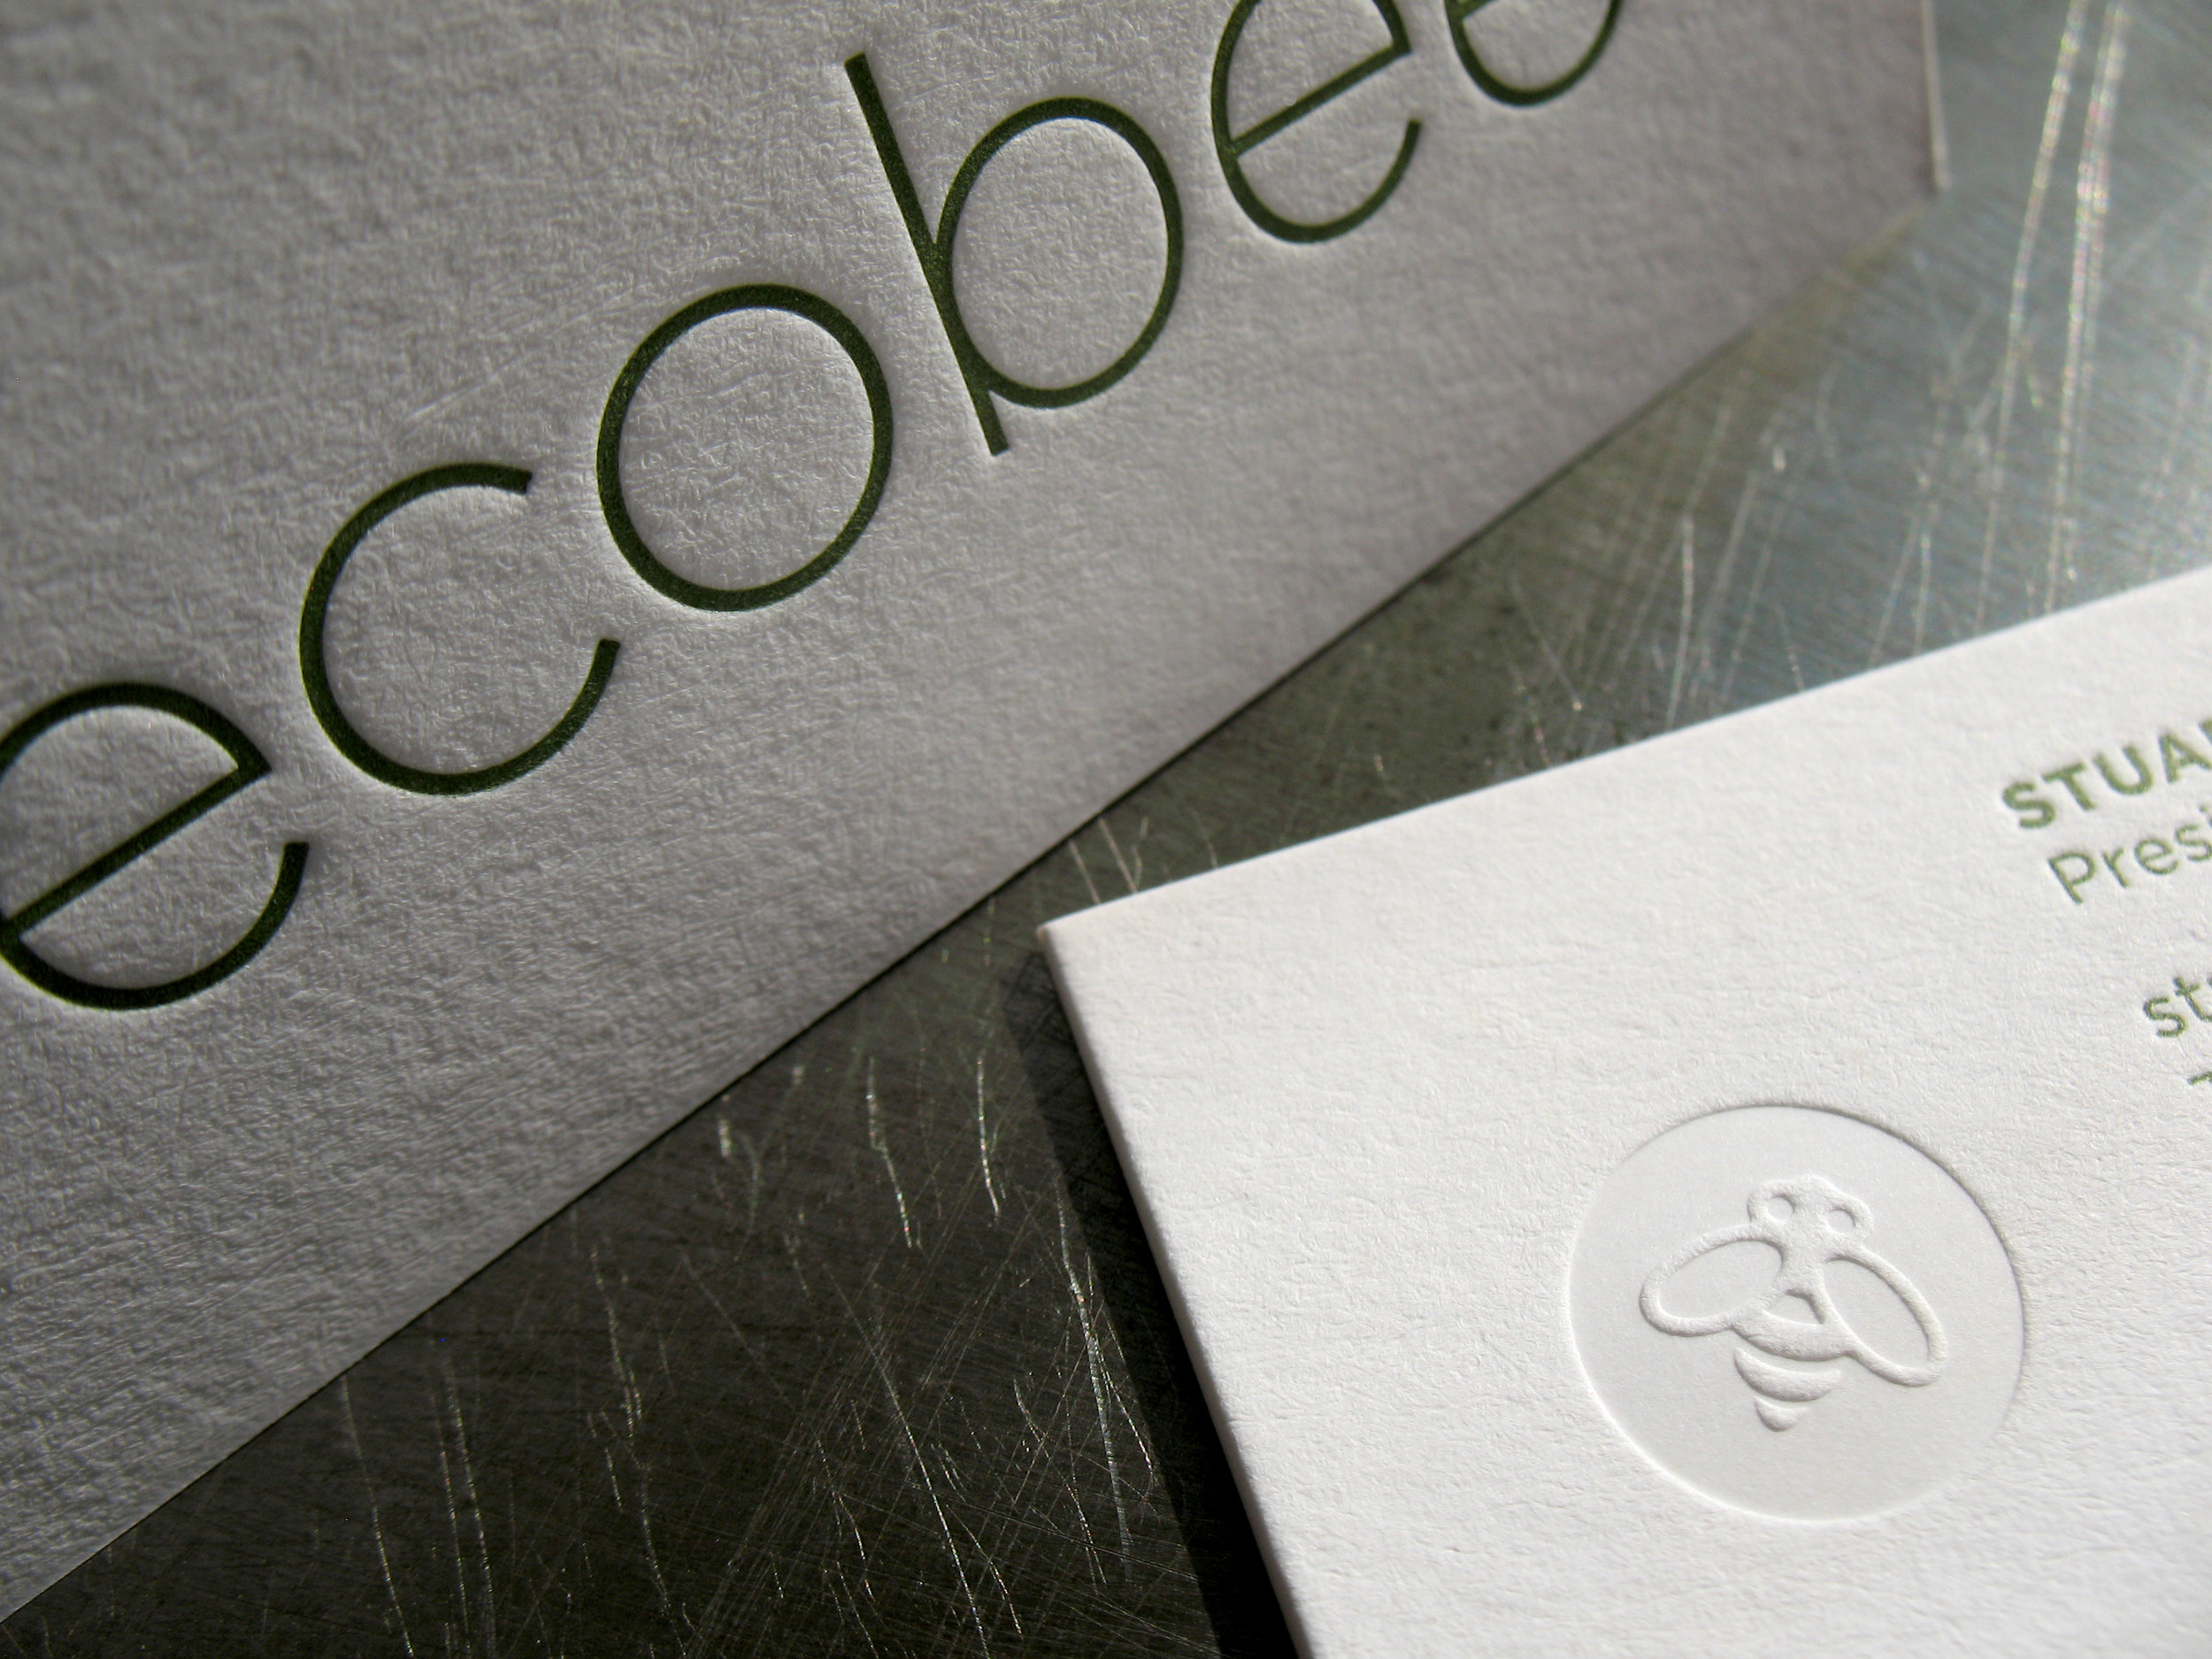 Ecobee Business Card